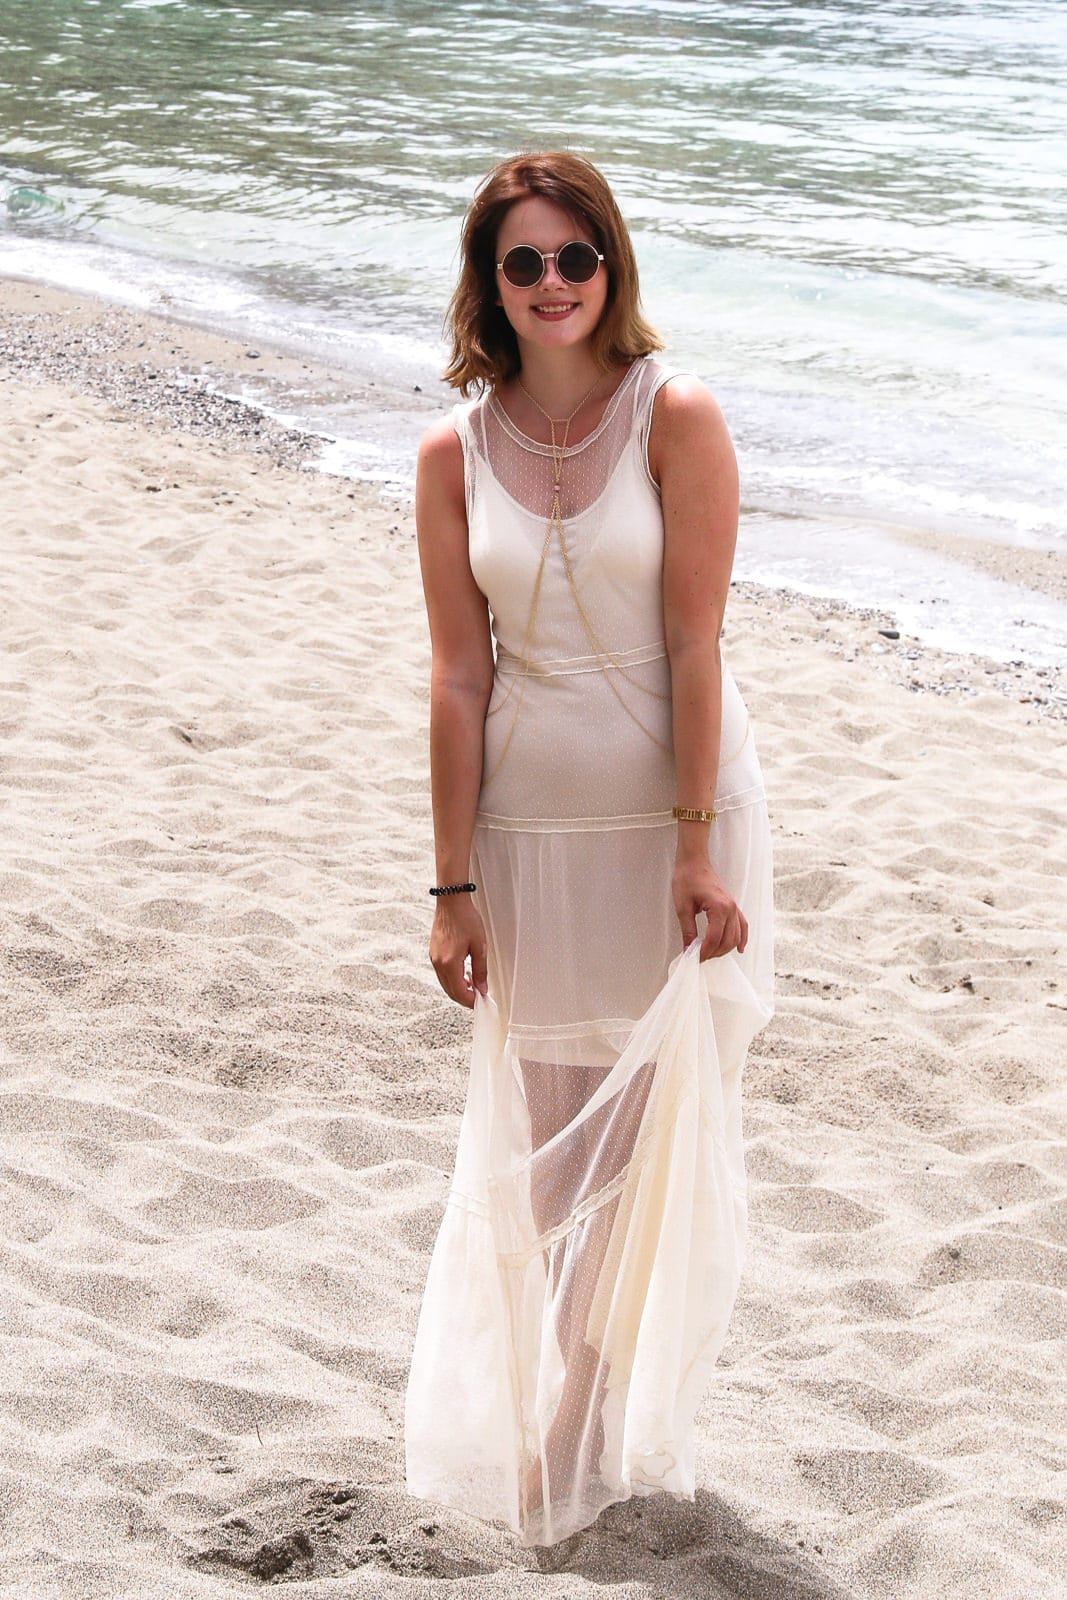 Der Hippie Strand auf Kreta: Guess Maxikleid & Body Chain in Matala